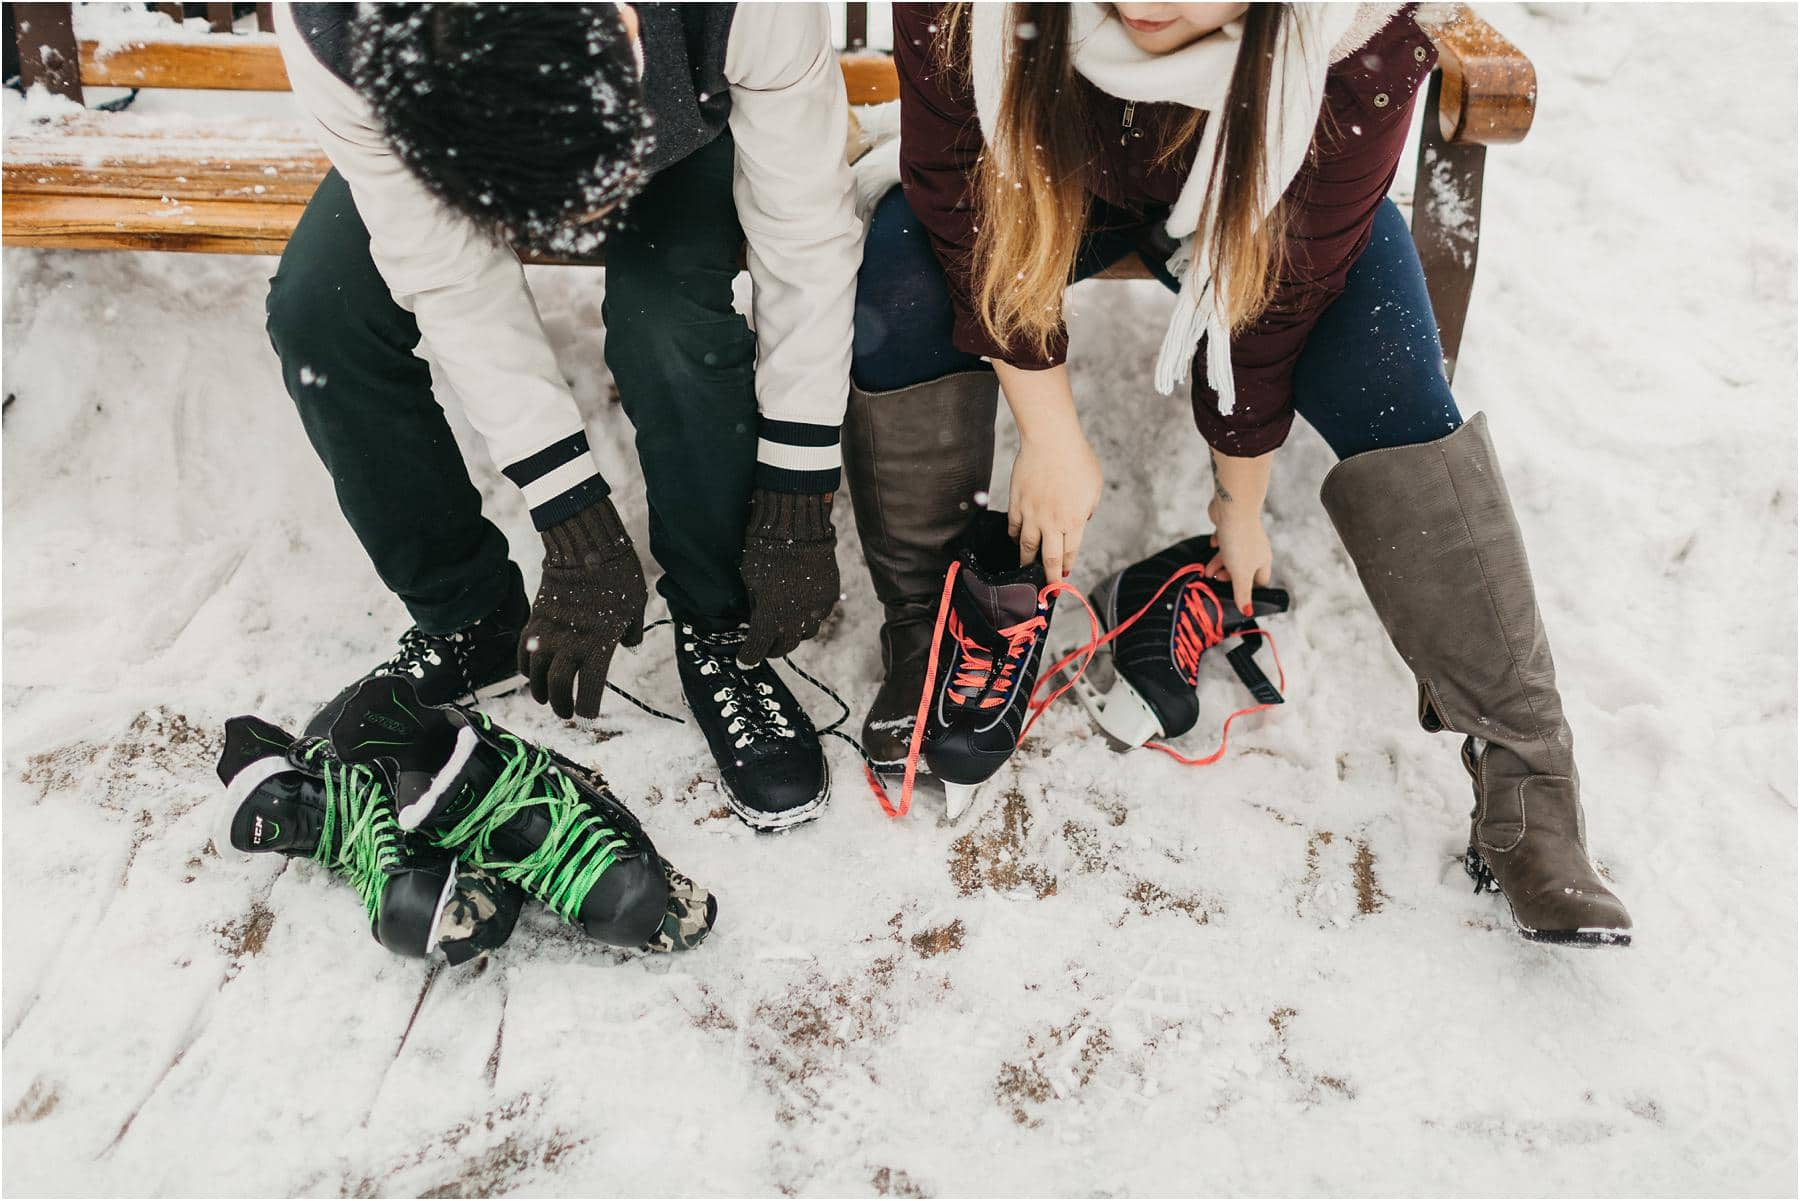 Top 5 Locations for your engagement shoot in vancouver - A couple putting on their ice skates and getting ready to skate on the frozen pond on top of grouse mountain.